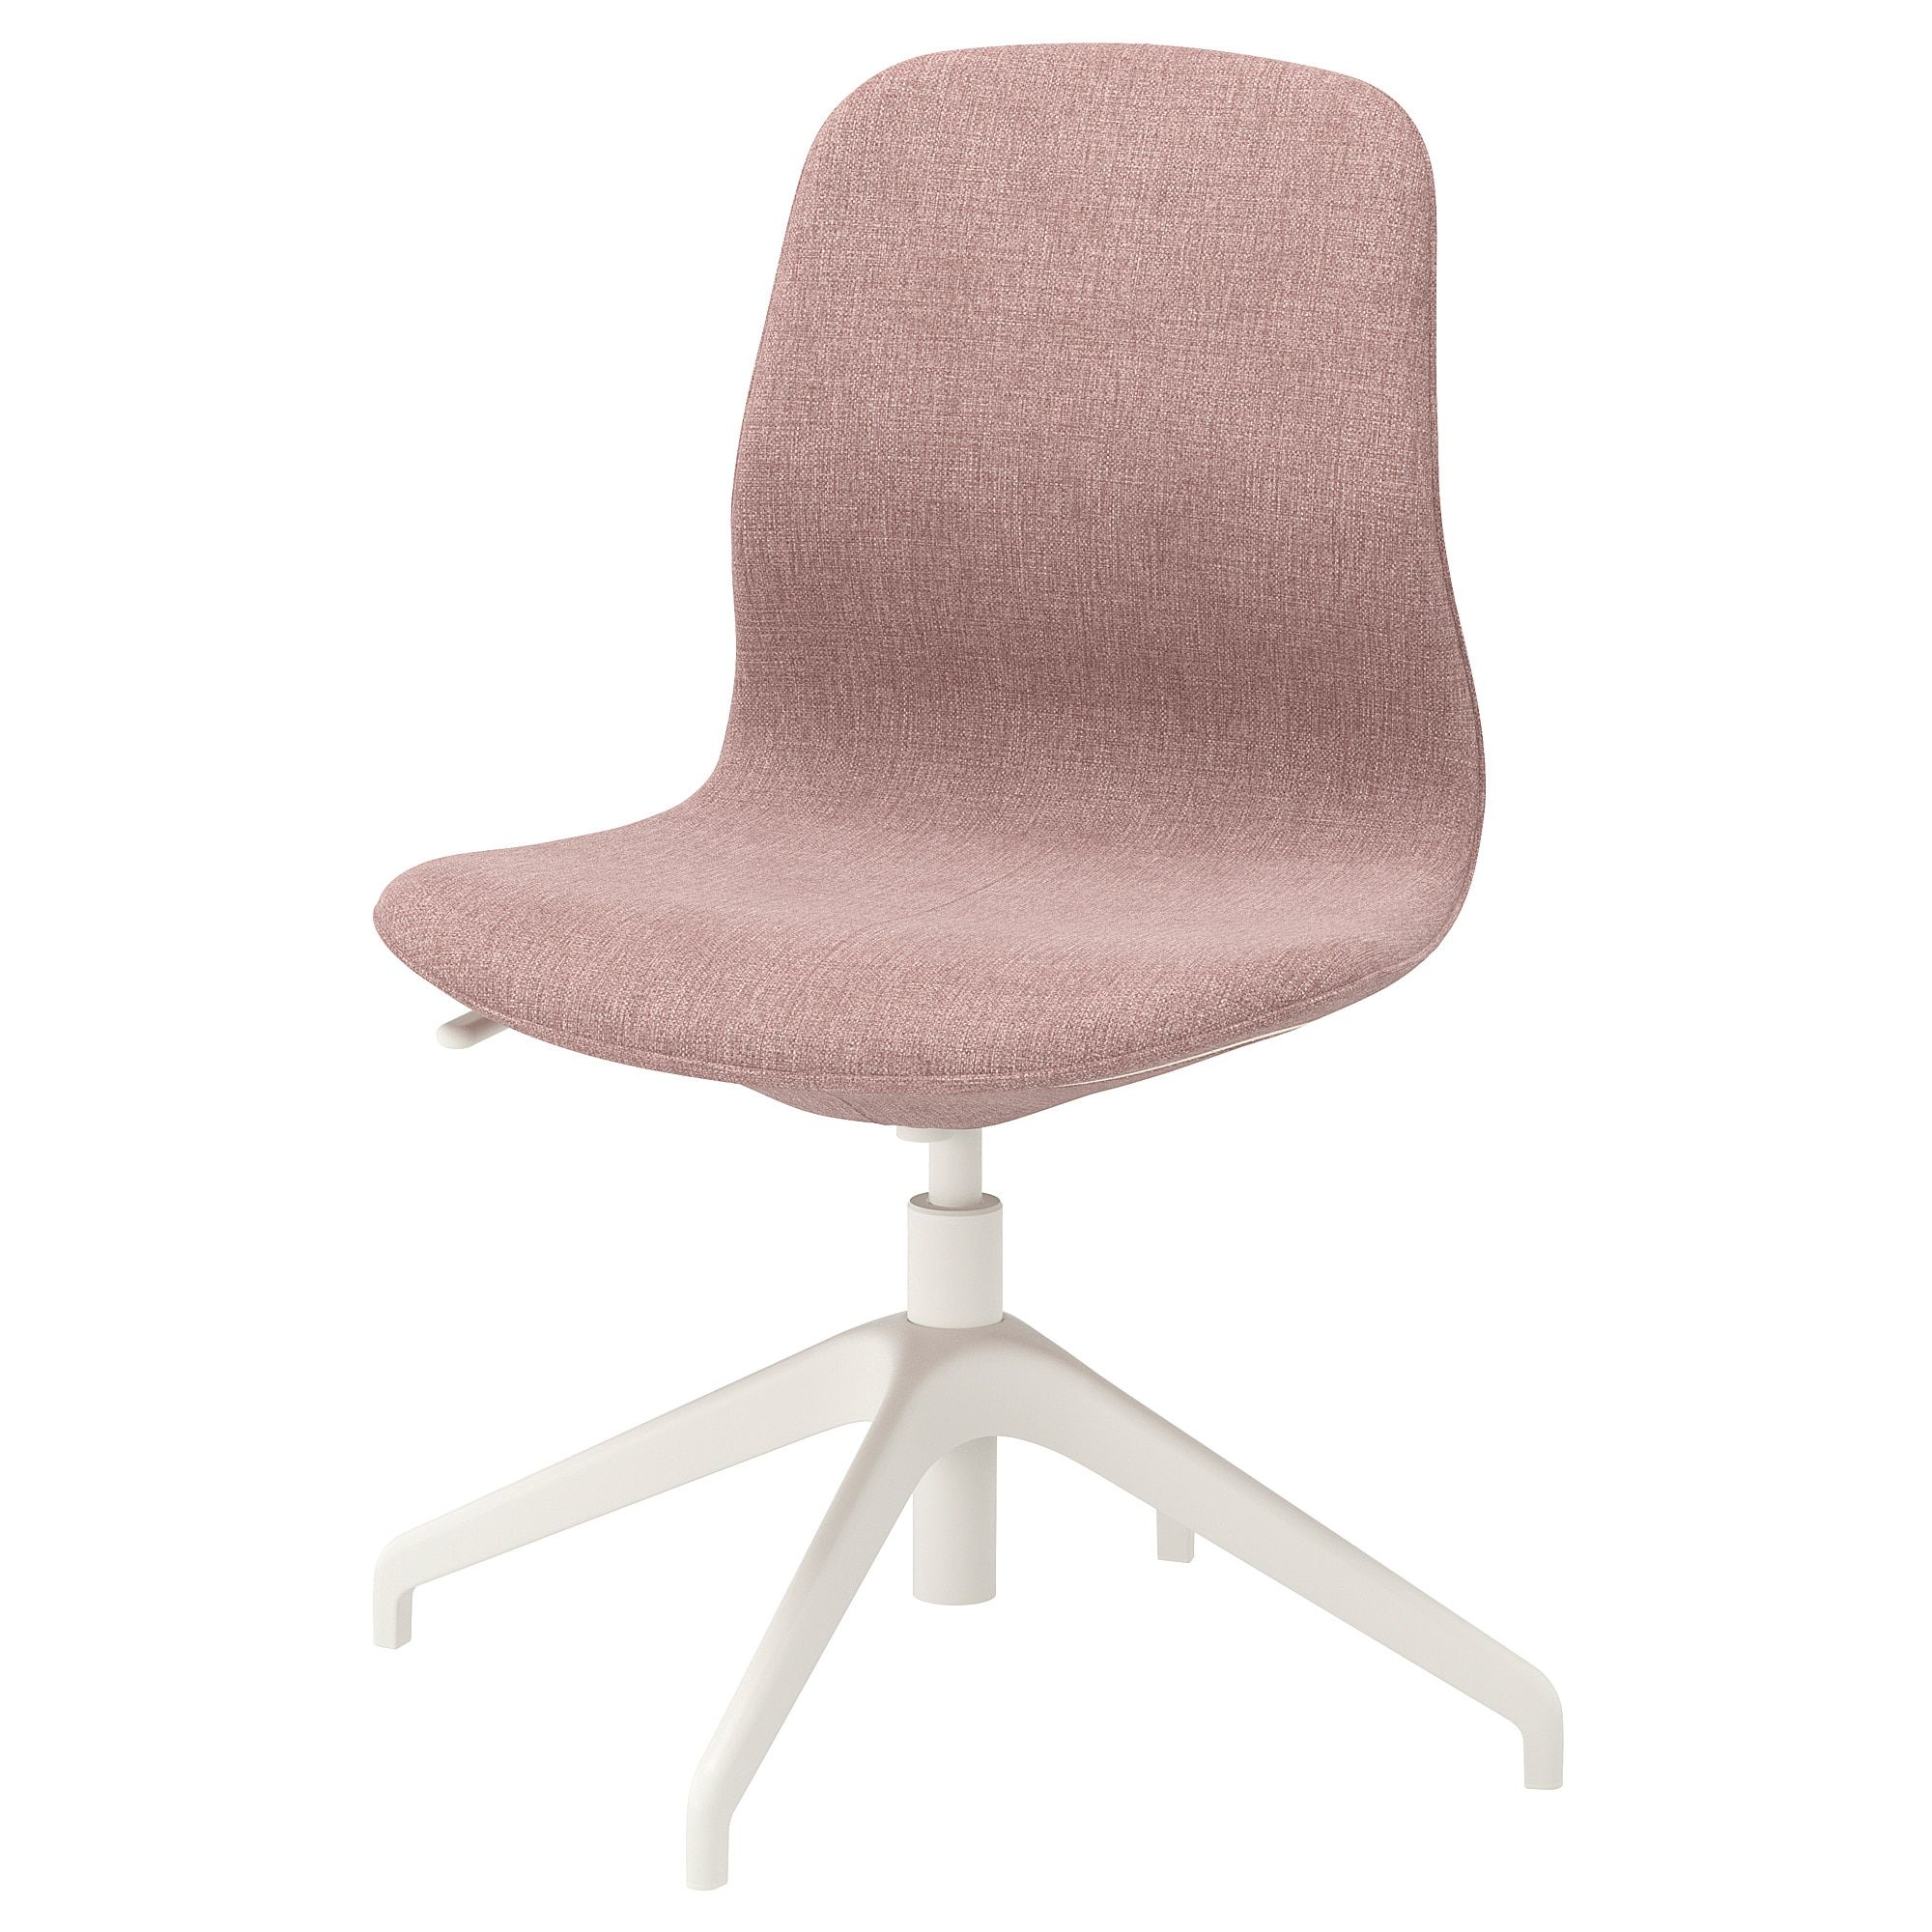 LÅNGFJÄLL Conference chair Gunnared light brownpink